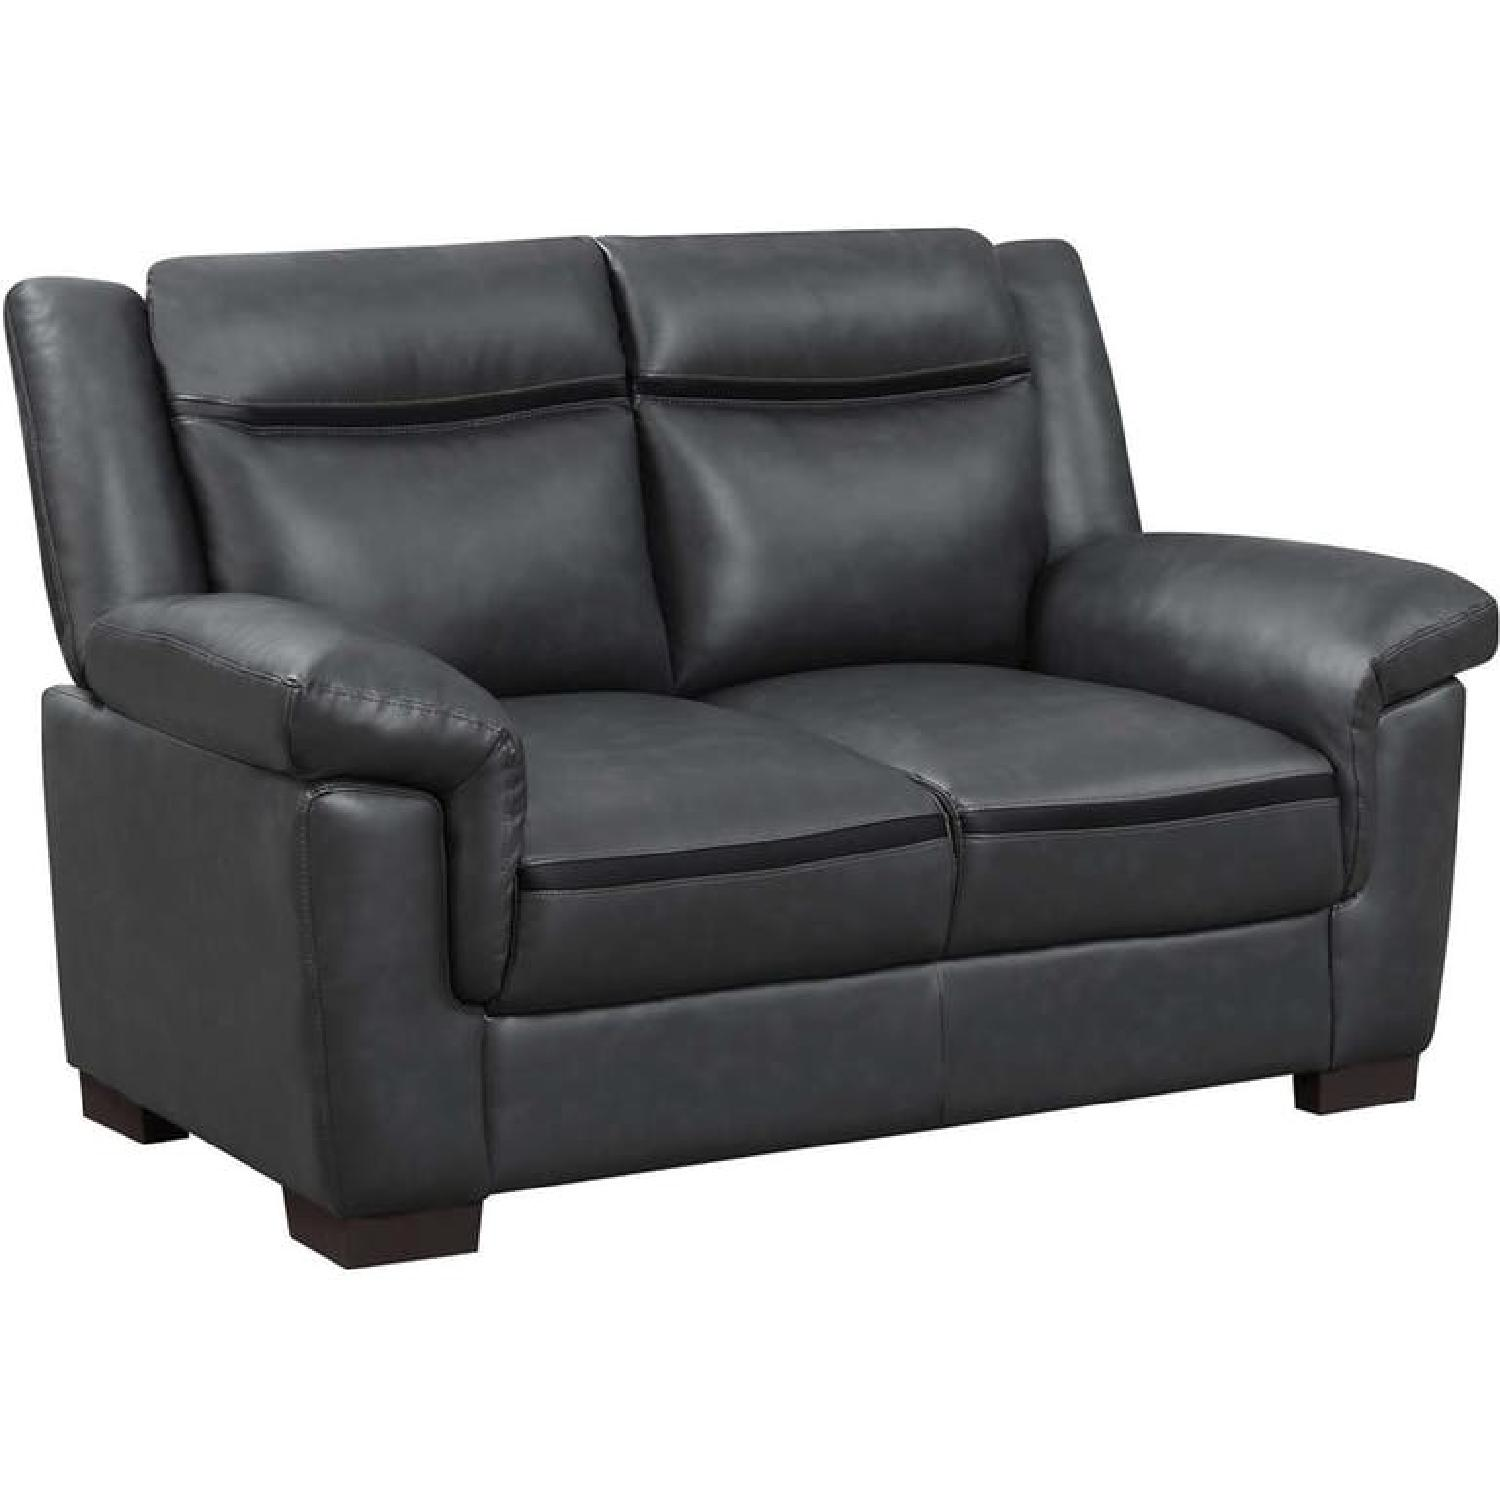 Modern Style Loveseat in Dark Grey Leatherette w/ Stripe